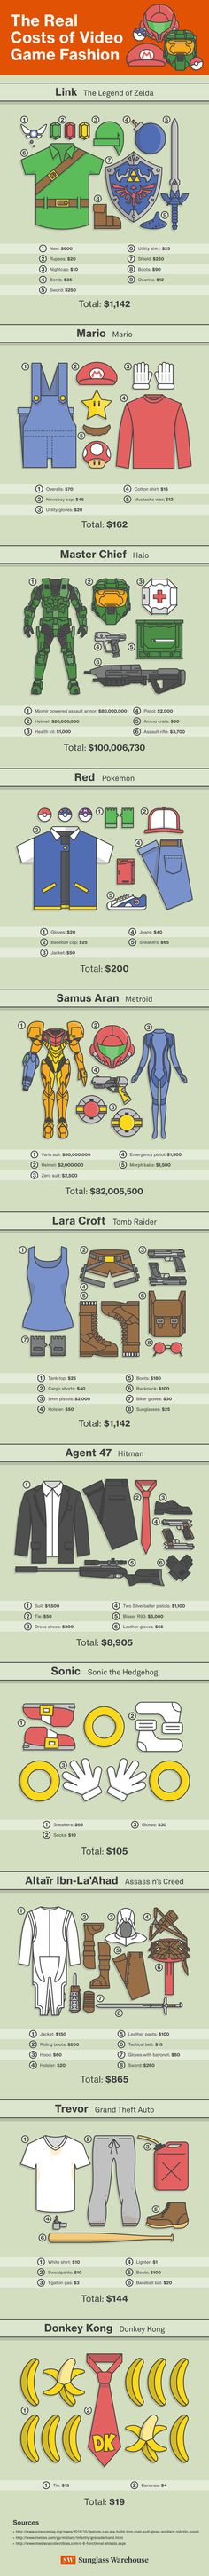 The Real Costs of Video Game Fashion                                                                                                                                                                                 More